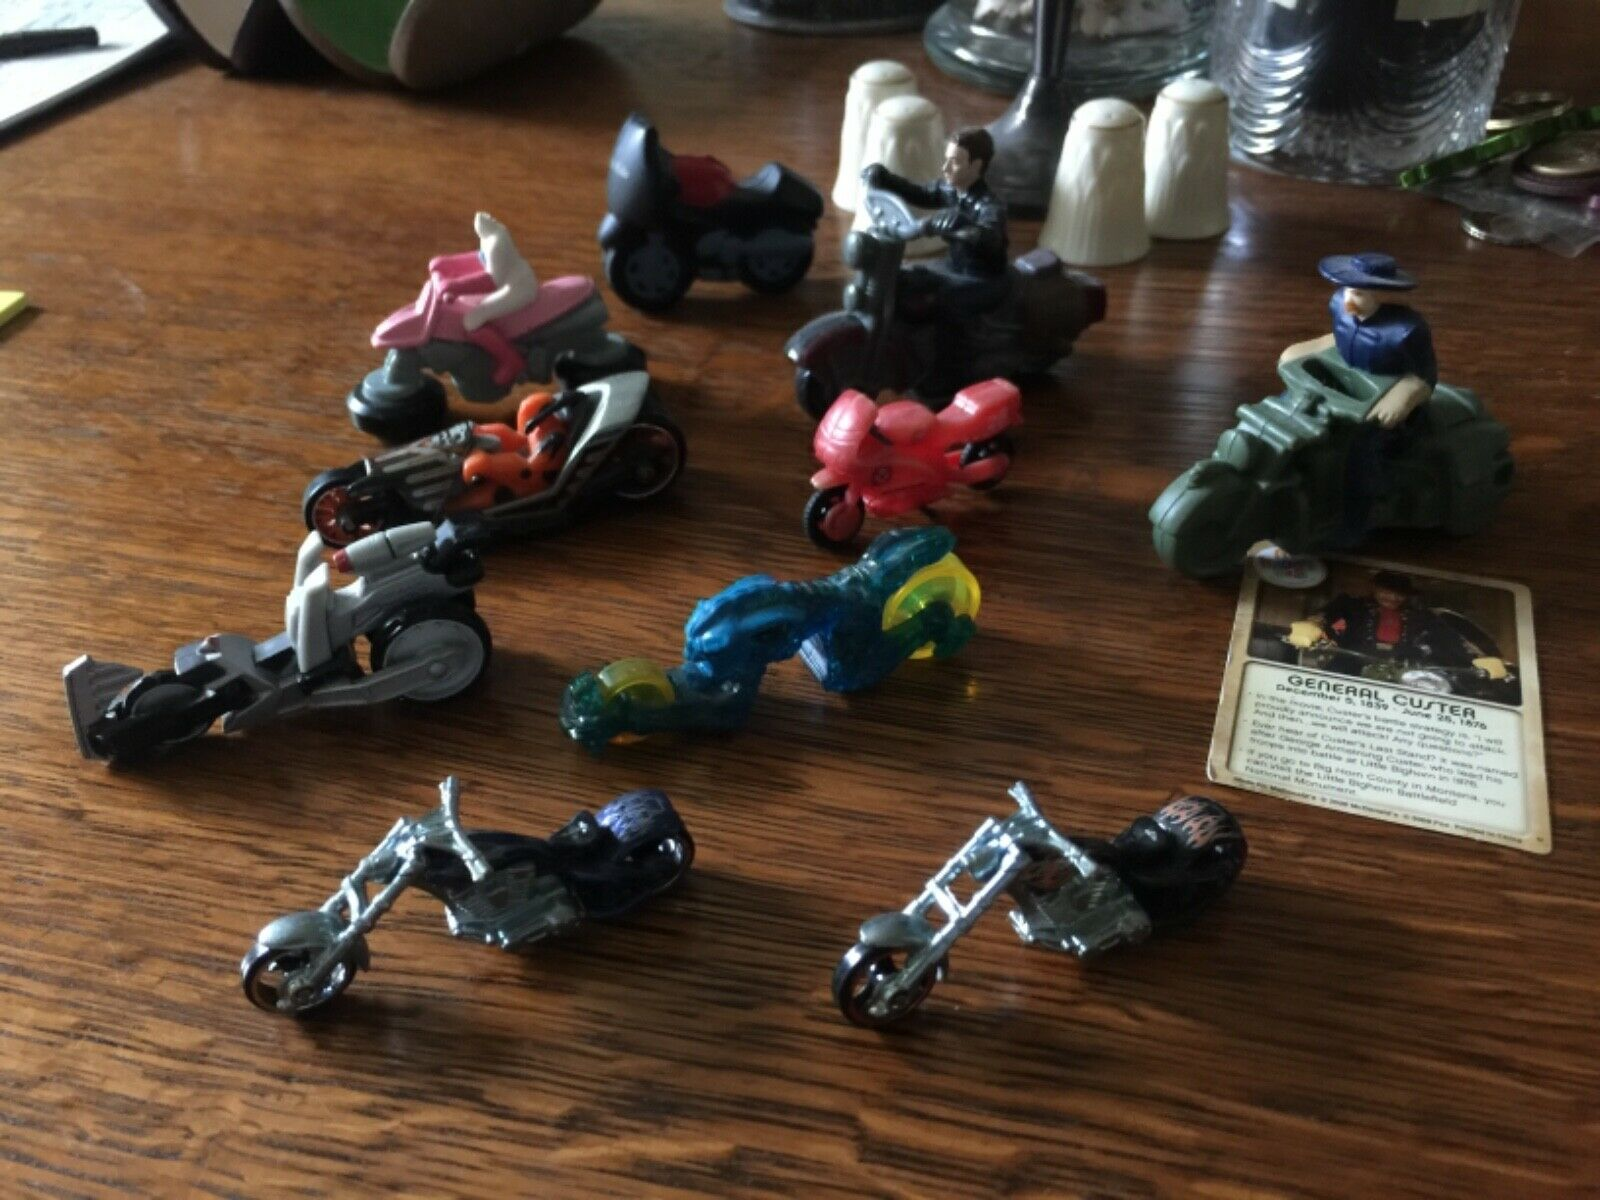 10 Toy Motorcycles McDonald Happy Meals, Hot Wheels, Terminator, Night Museum - $14.00